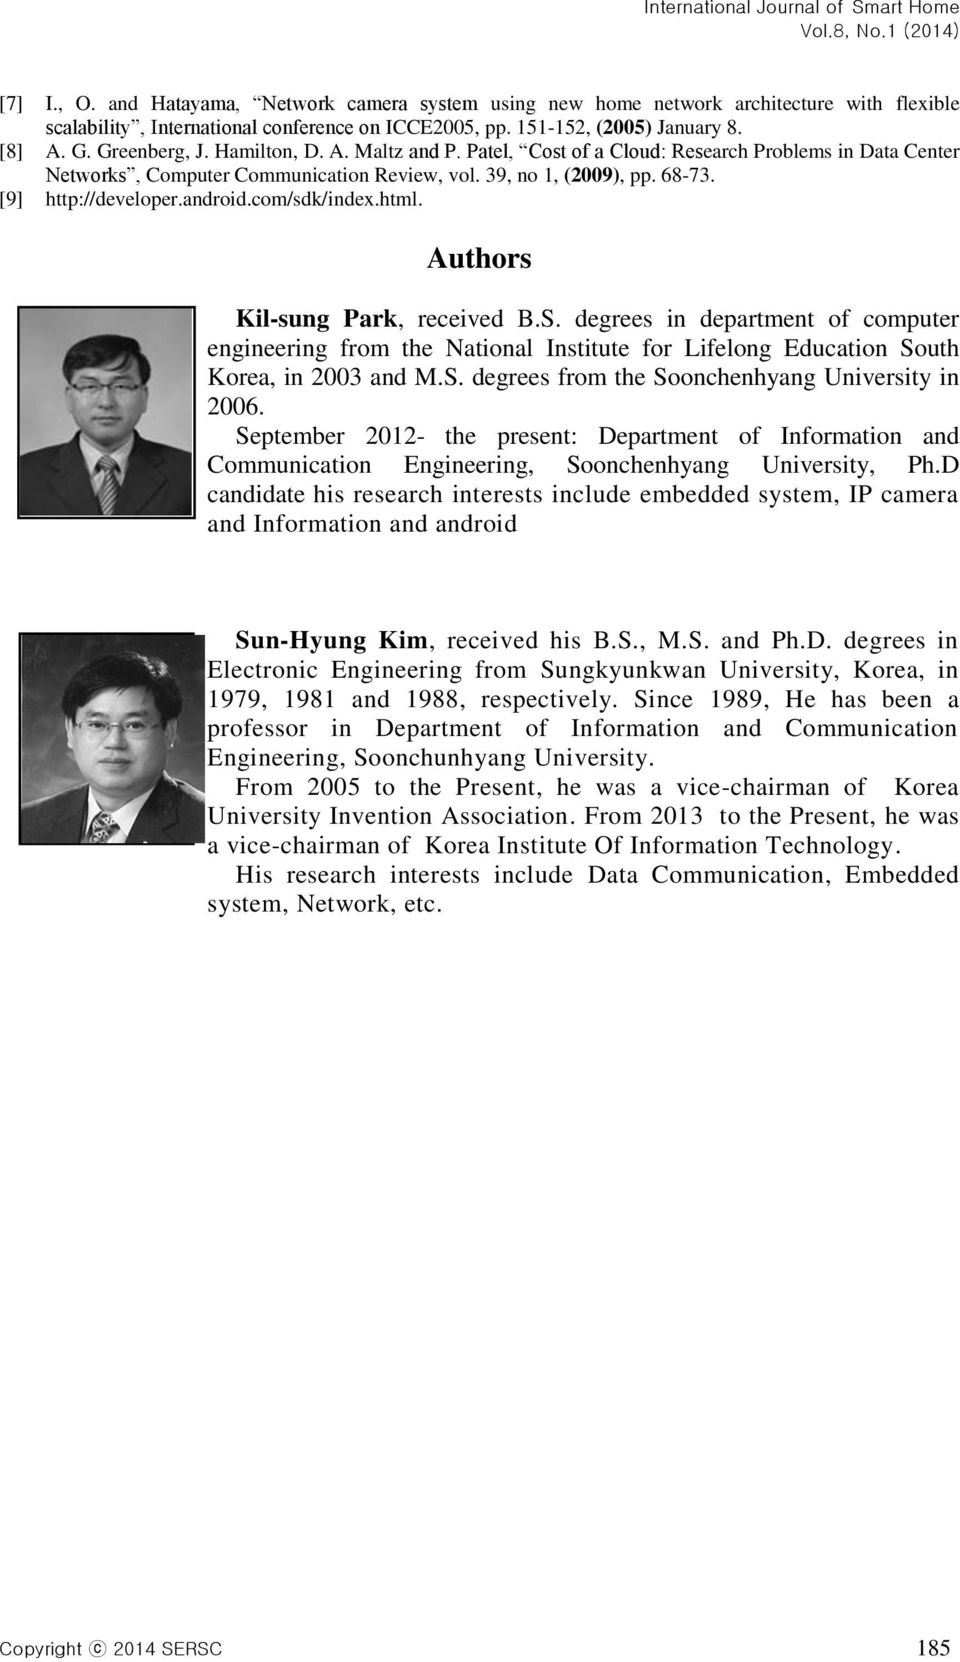 android.com/sdk/index.html. Authors Kil-sung Park, received B.S. degrees in department of computer engineering from the National Institute for Lifelong Education South Korea, in 2003 and M.S. degrees from the Soonchenhyang University in 2006.